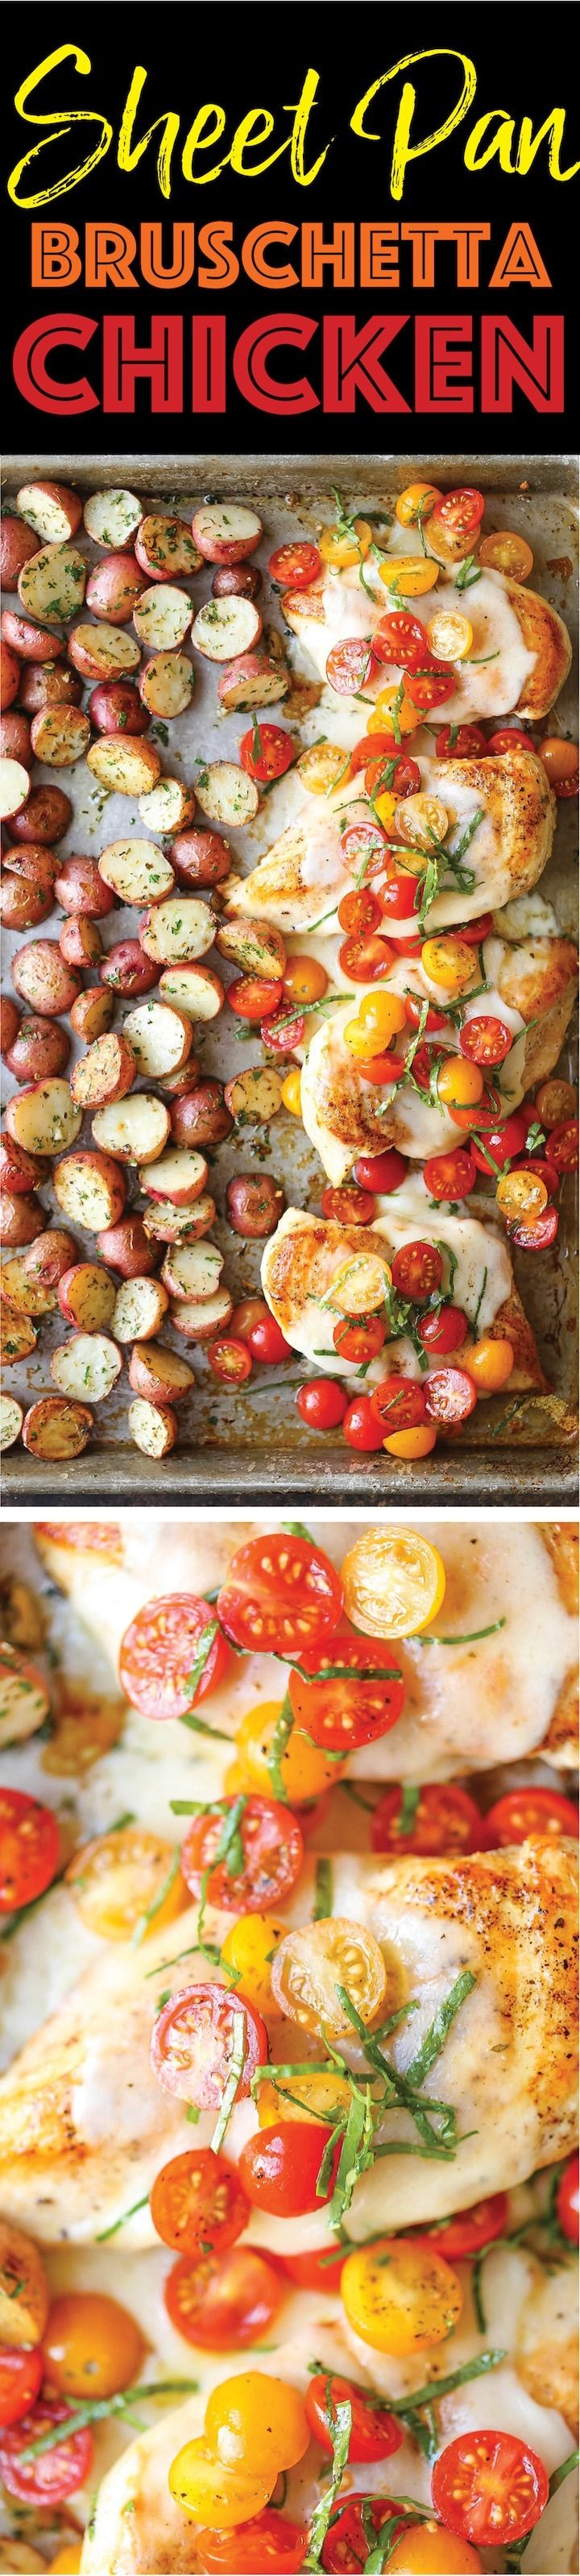 Quick, easy, and fresh sheet pan bruschetta chicken recipe. Looking for ideas and recipes for dinners and meals for families and kids? Boneless skinless chicken breasts pair with fresh tomatoes and potatoes for a simple one pan supper.